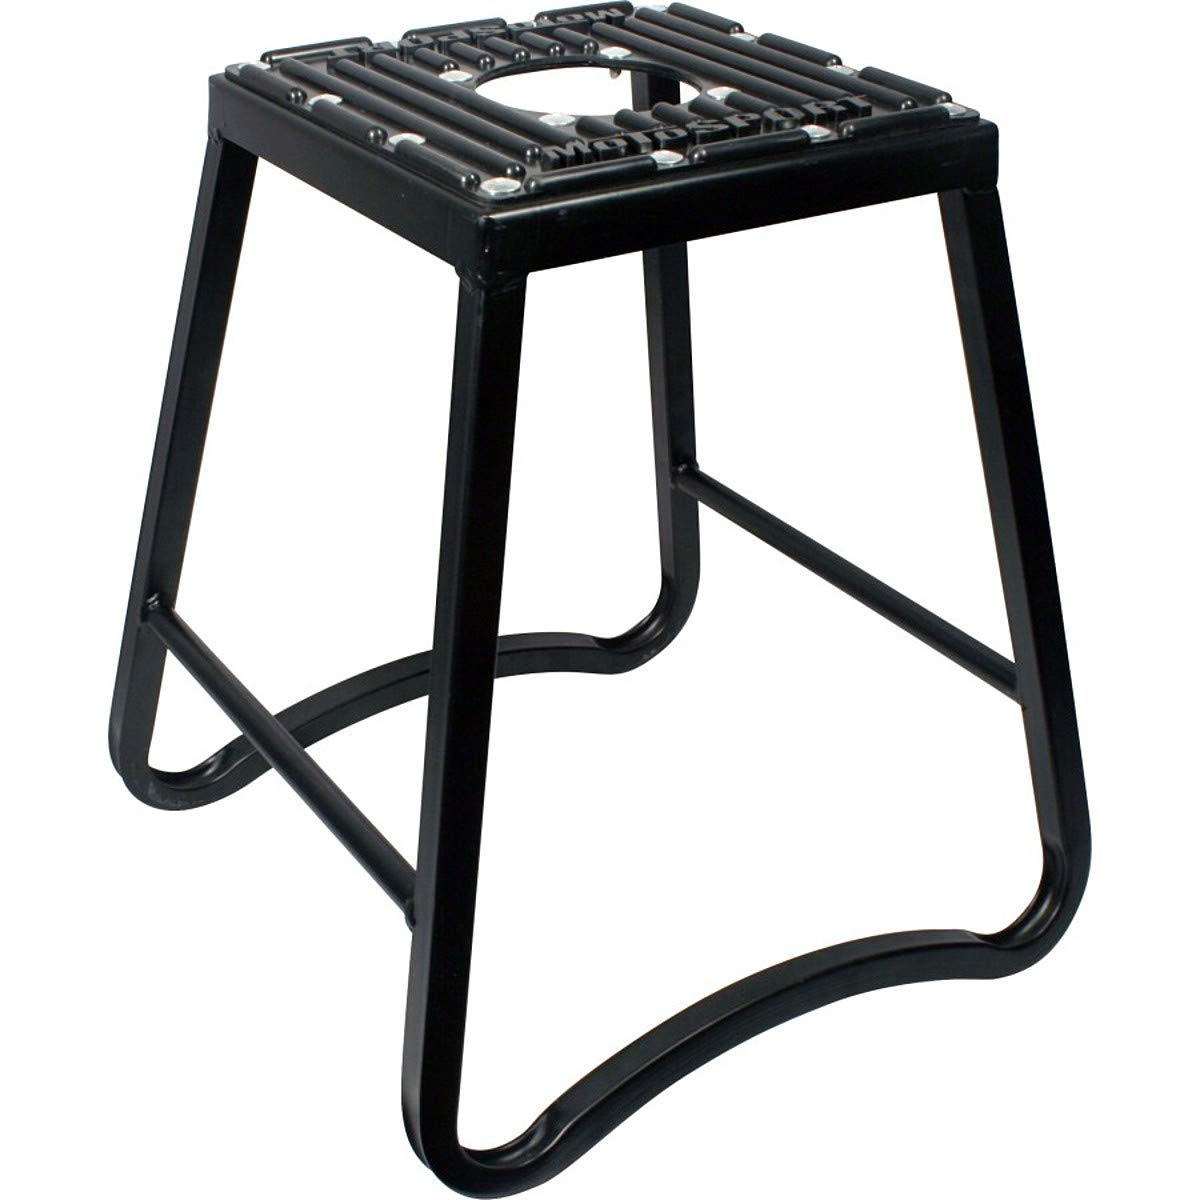 MotoSport Steel Dirt Bike Stand